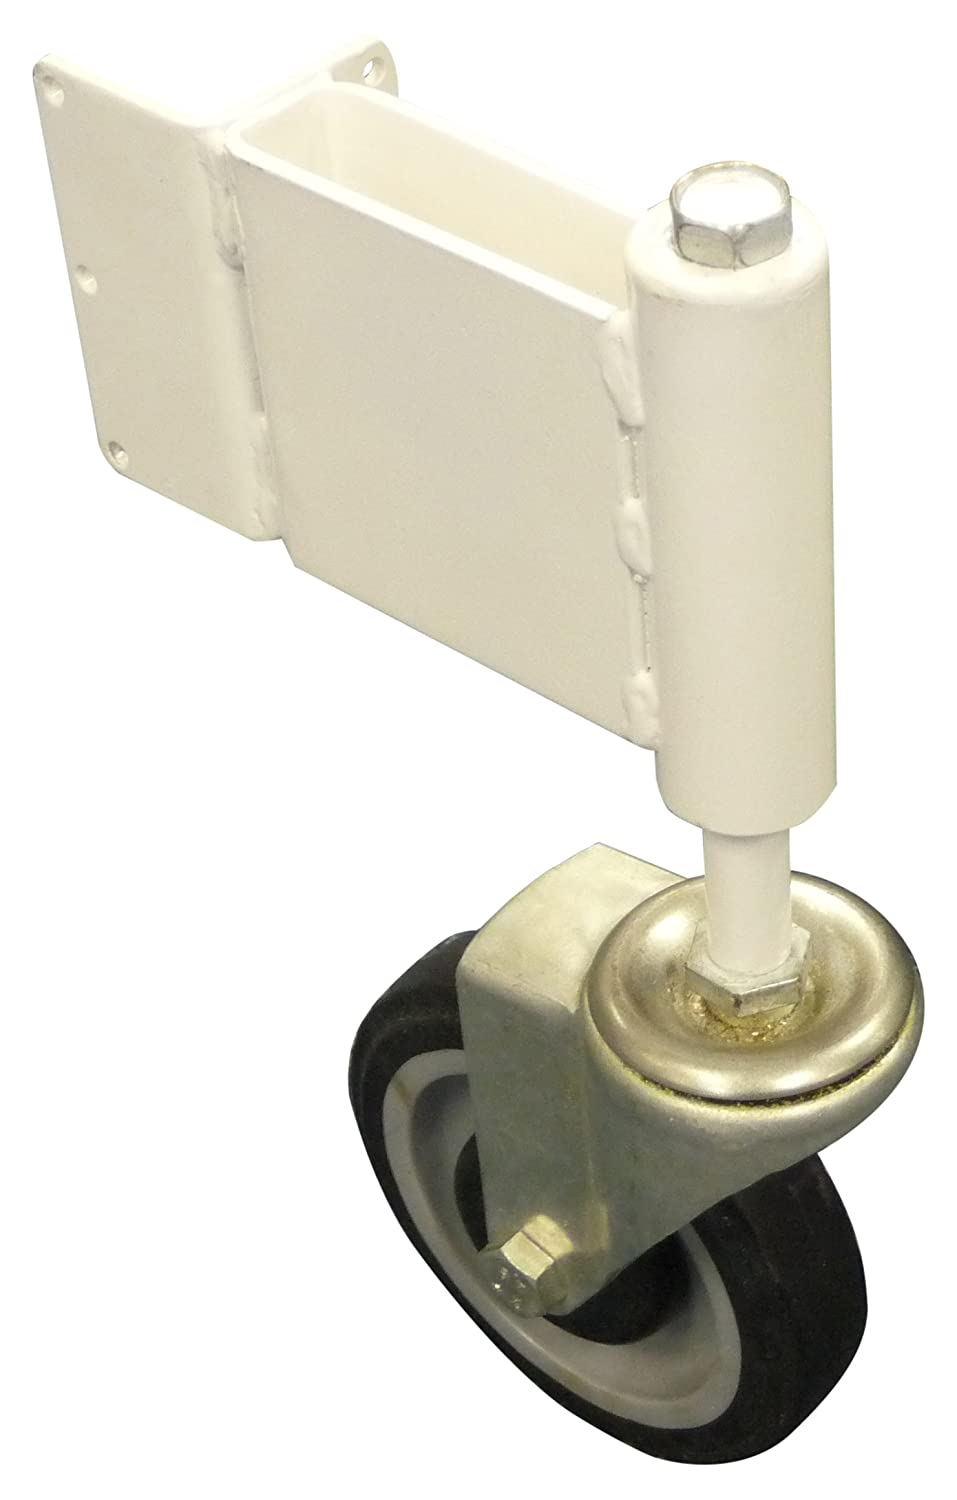 Swivel Gate Wheel with Suspension Up to 125Lb Load Capacity Left Swing Jewett Cameron Company AG 22001L Adjust-A-Gate Hard Rubber